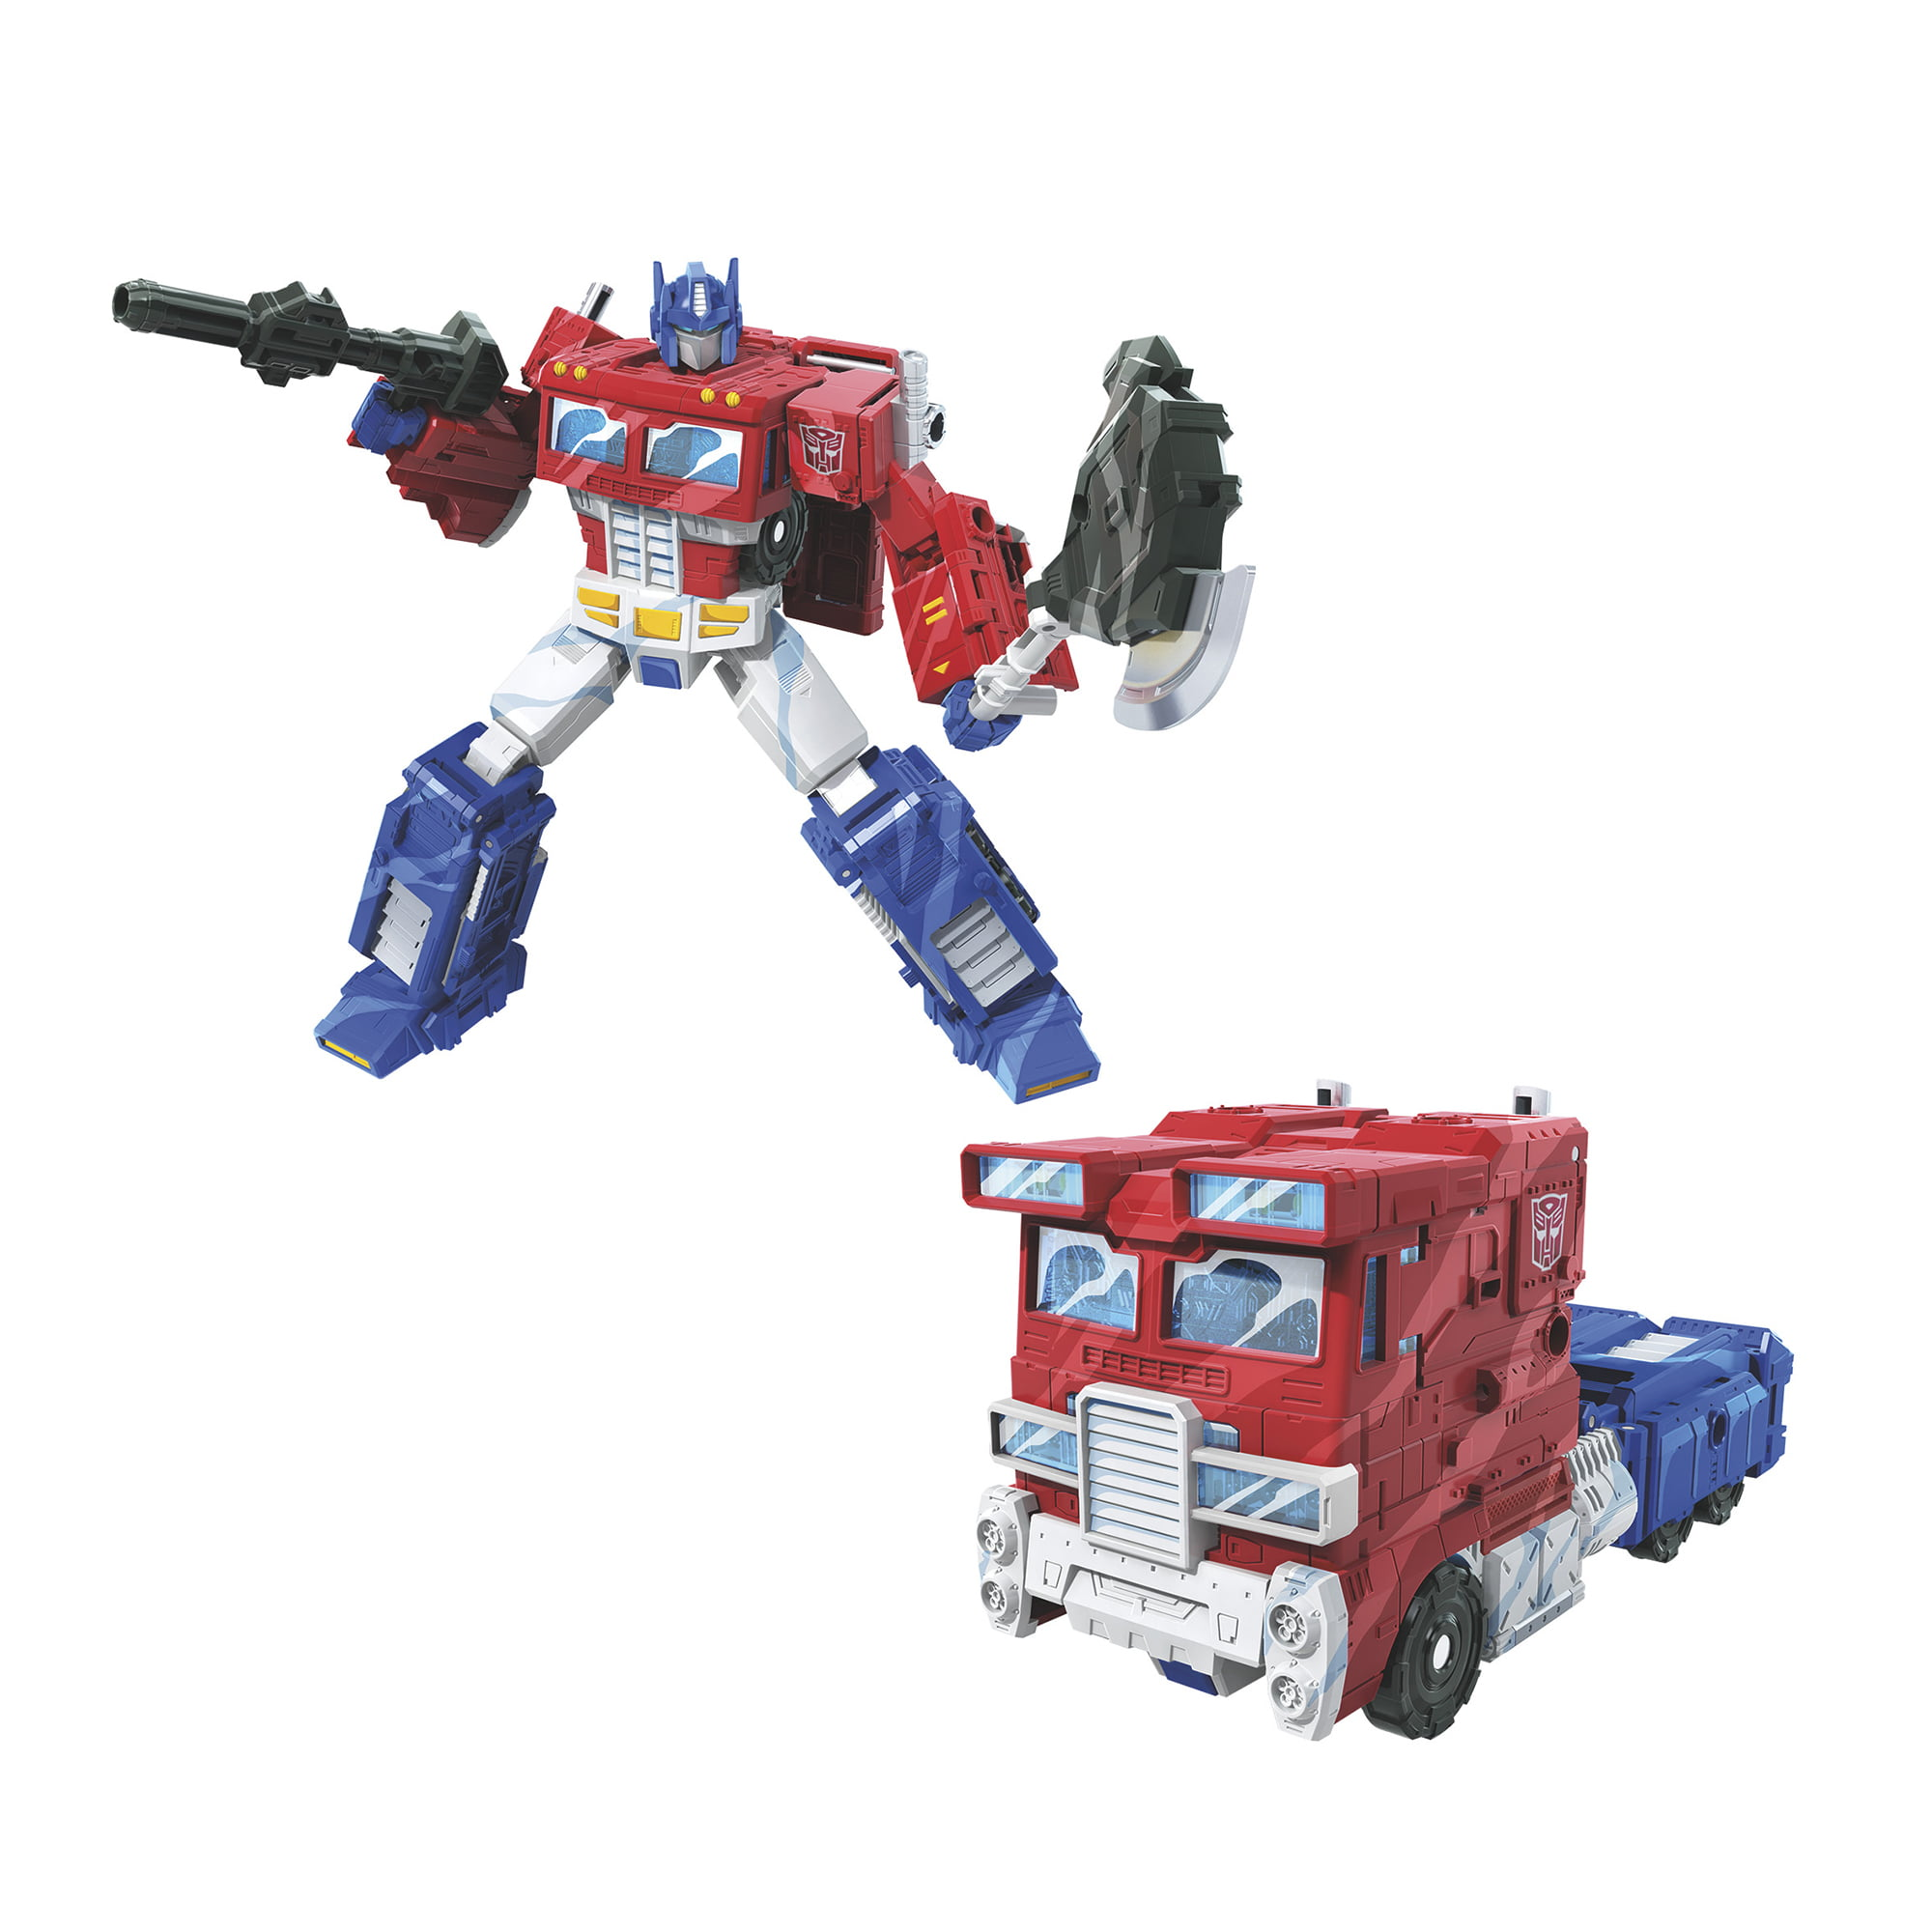 Transformers Generations 35th Anniversary WFC-S65 Classic Animation Optimus Prime by Hasbro Inc.